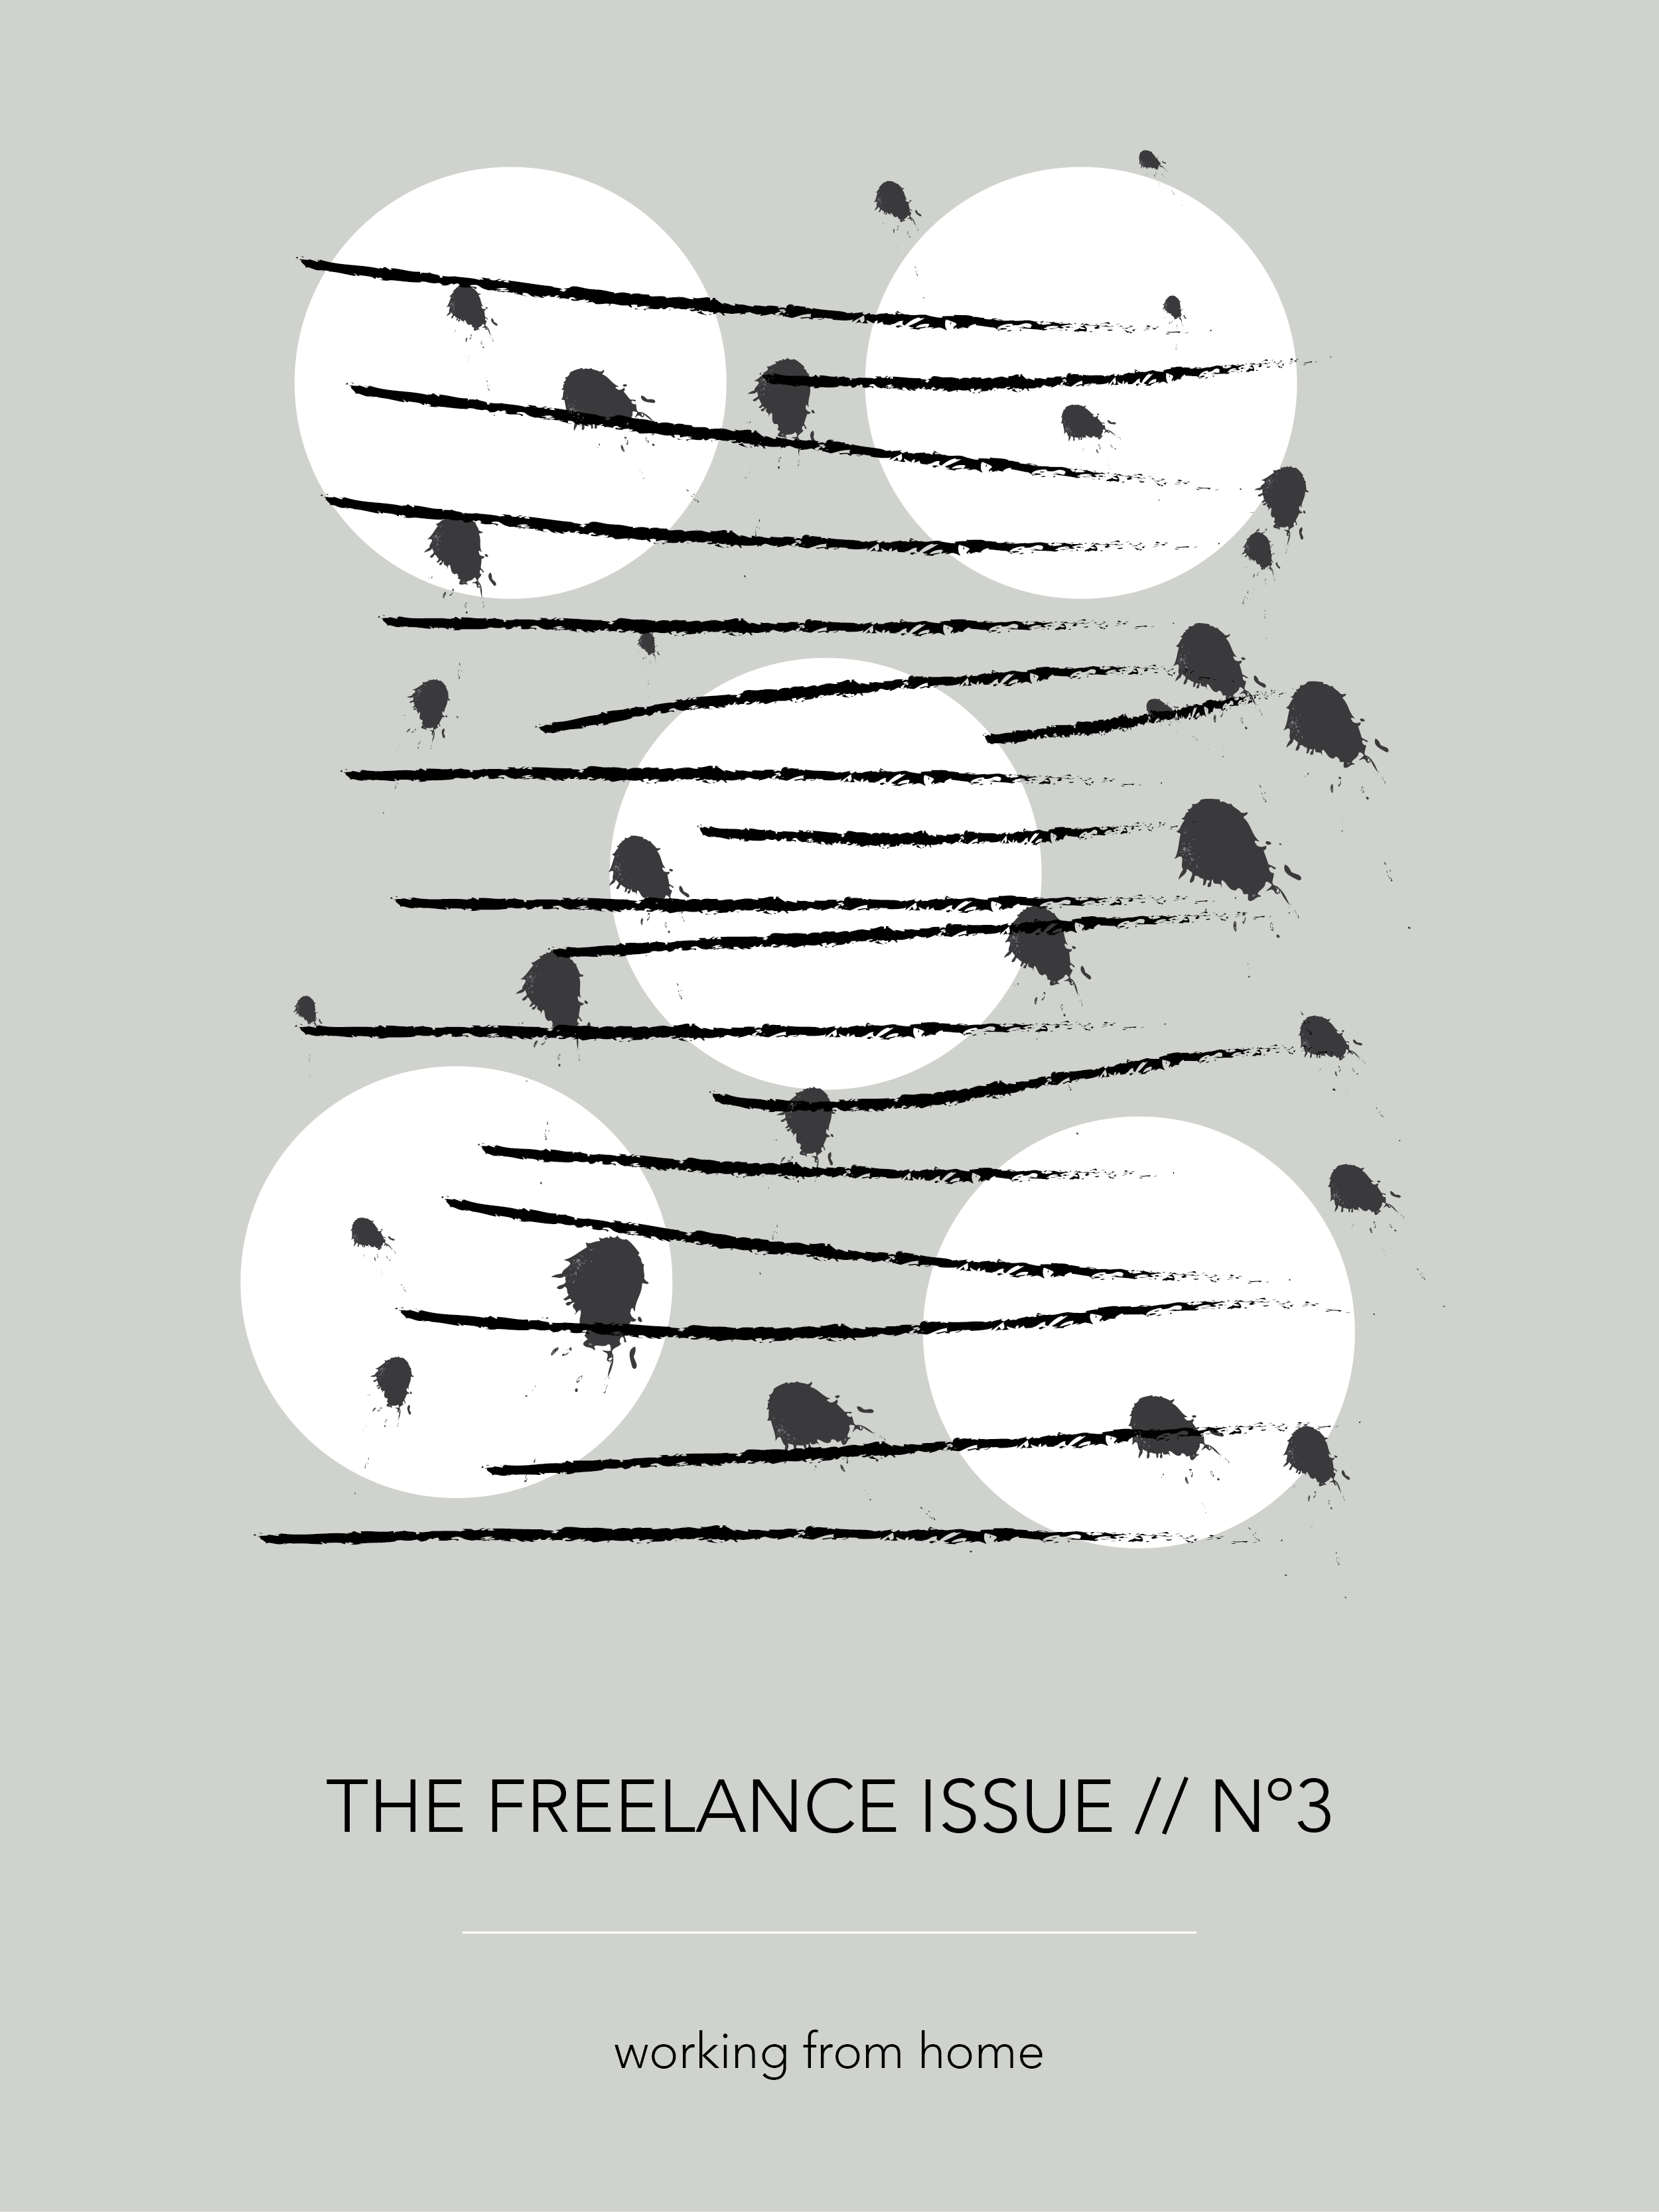 The Freelance Issue No. 3 - Working from Home, by Phylleli #design #graphicdesign #thefreelanceissue #workfromhome #designer #homeoffice #remoteoffice #freelancedesigner #freelancework